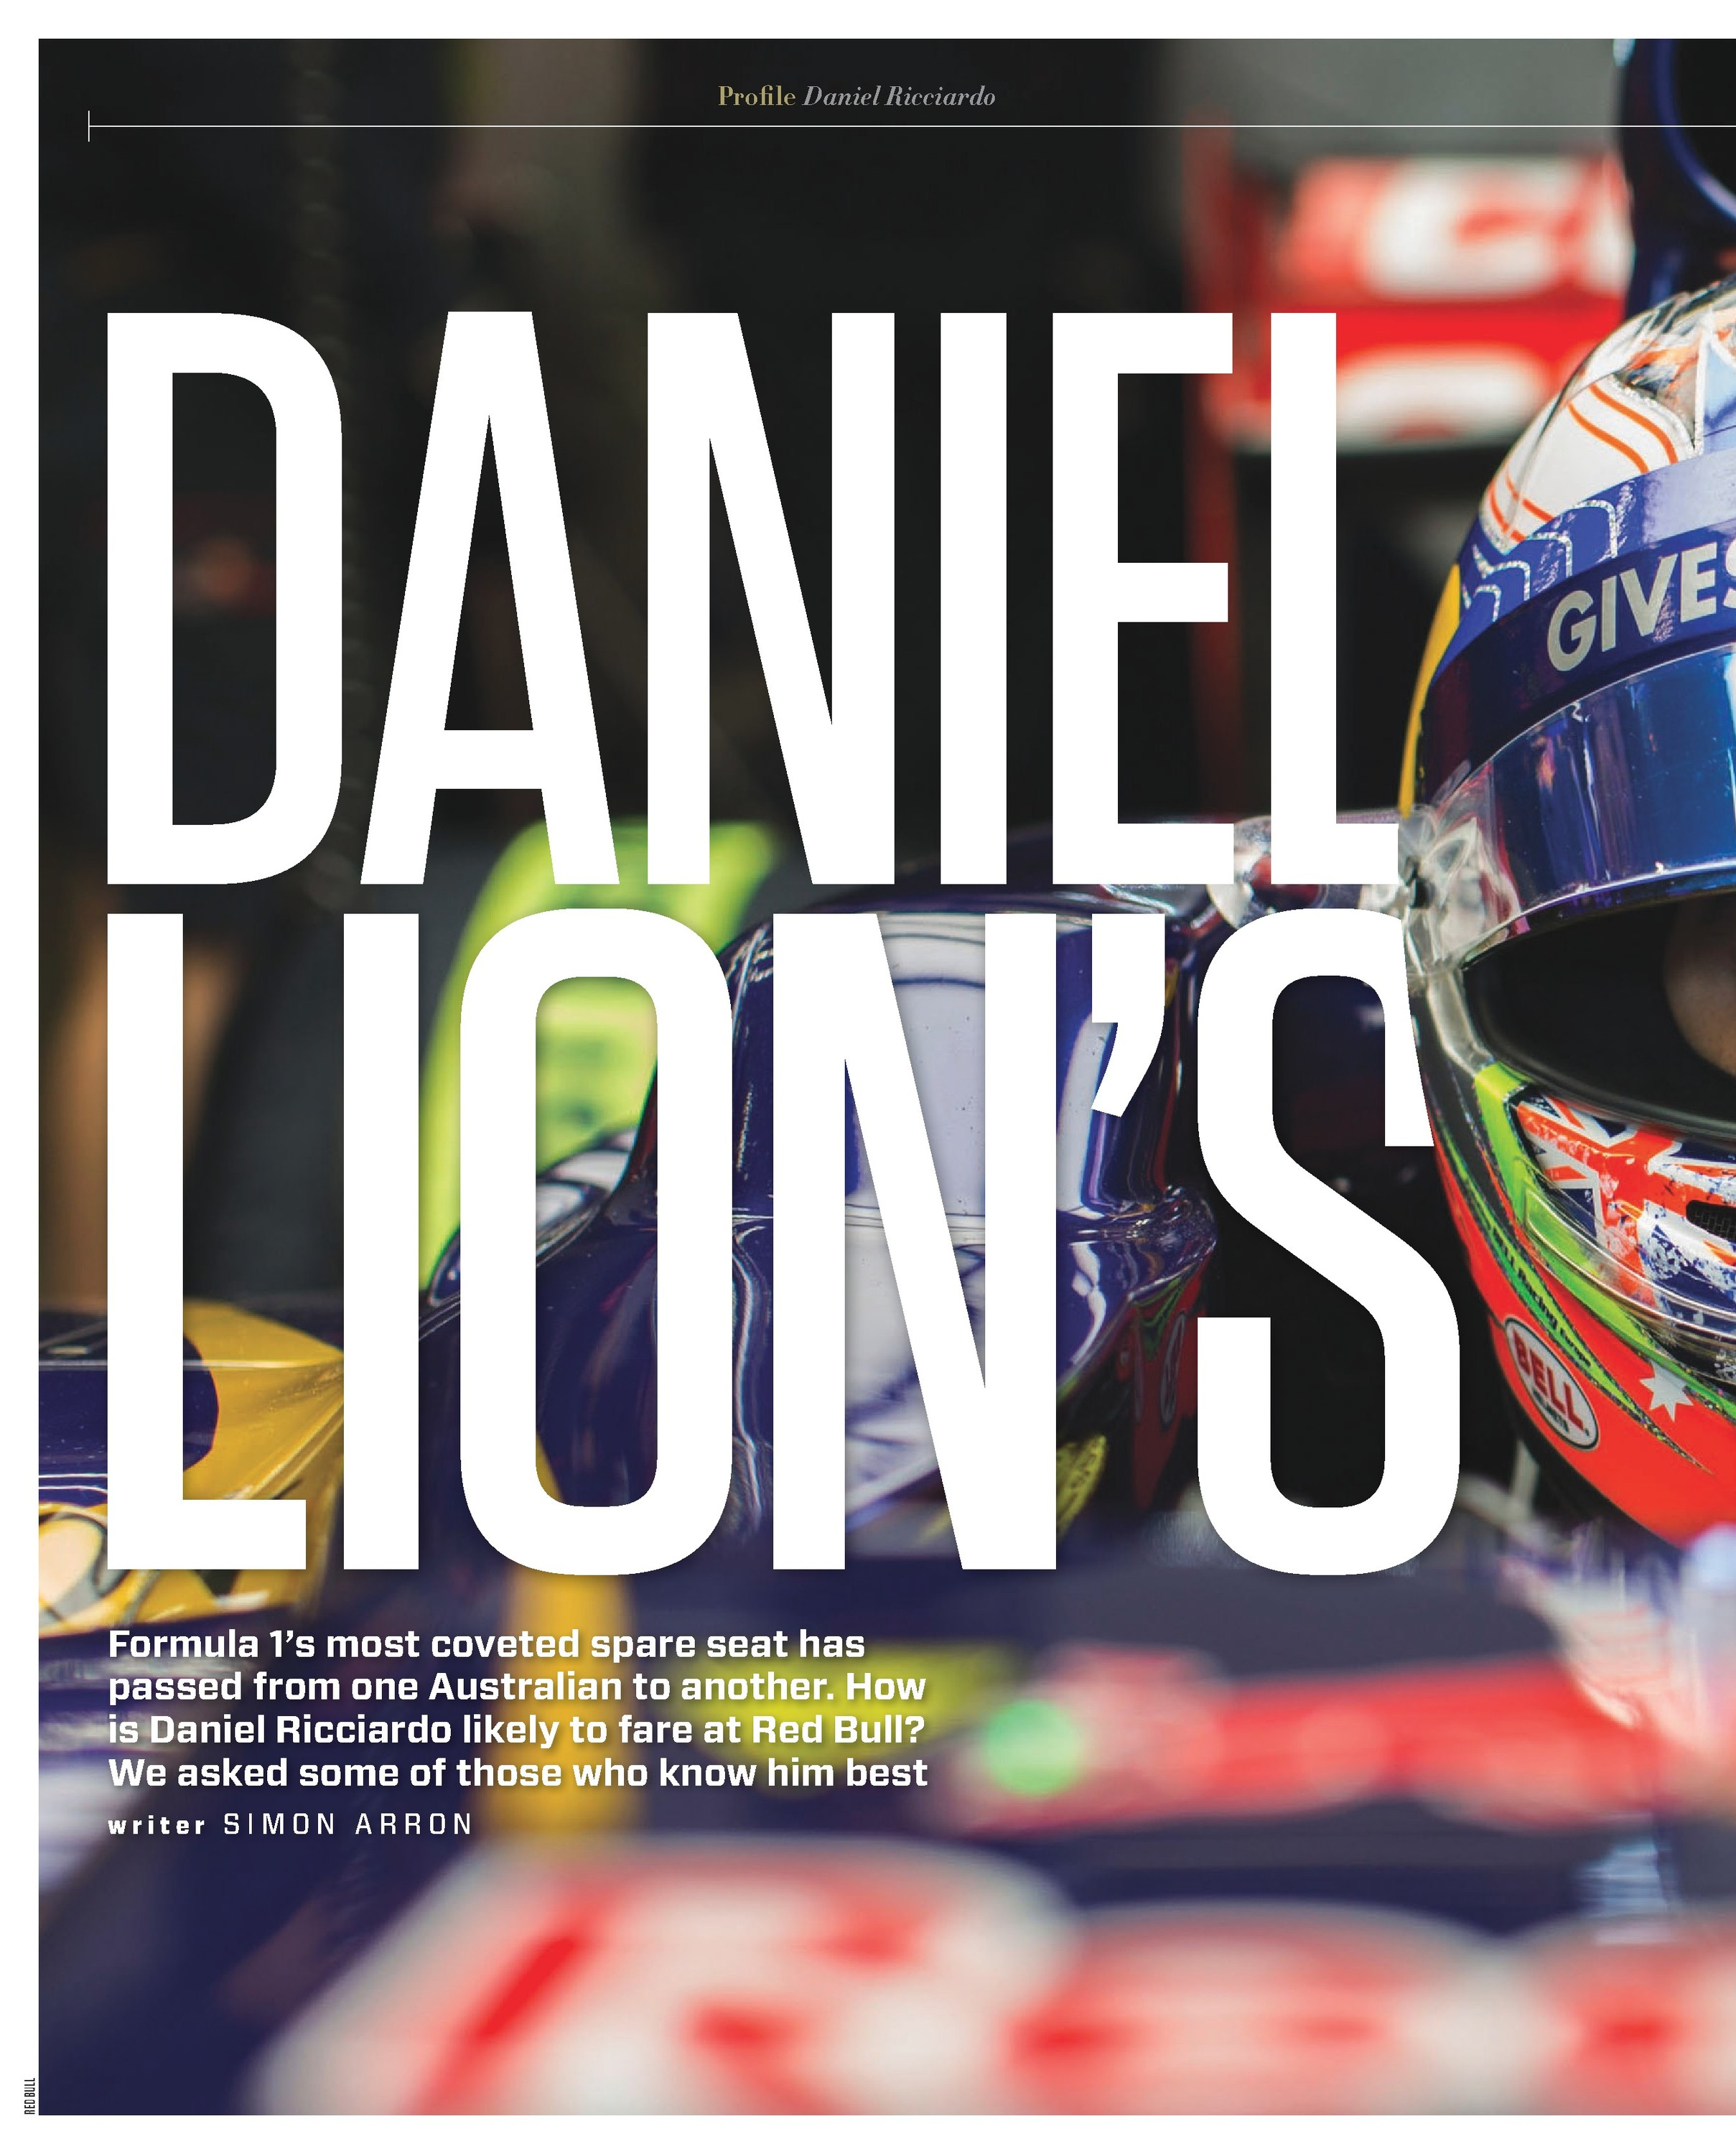 Daniel in the lion's den image